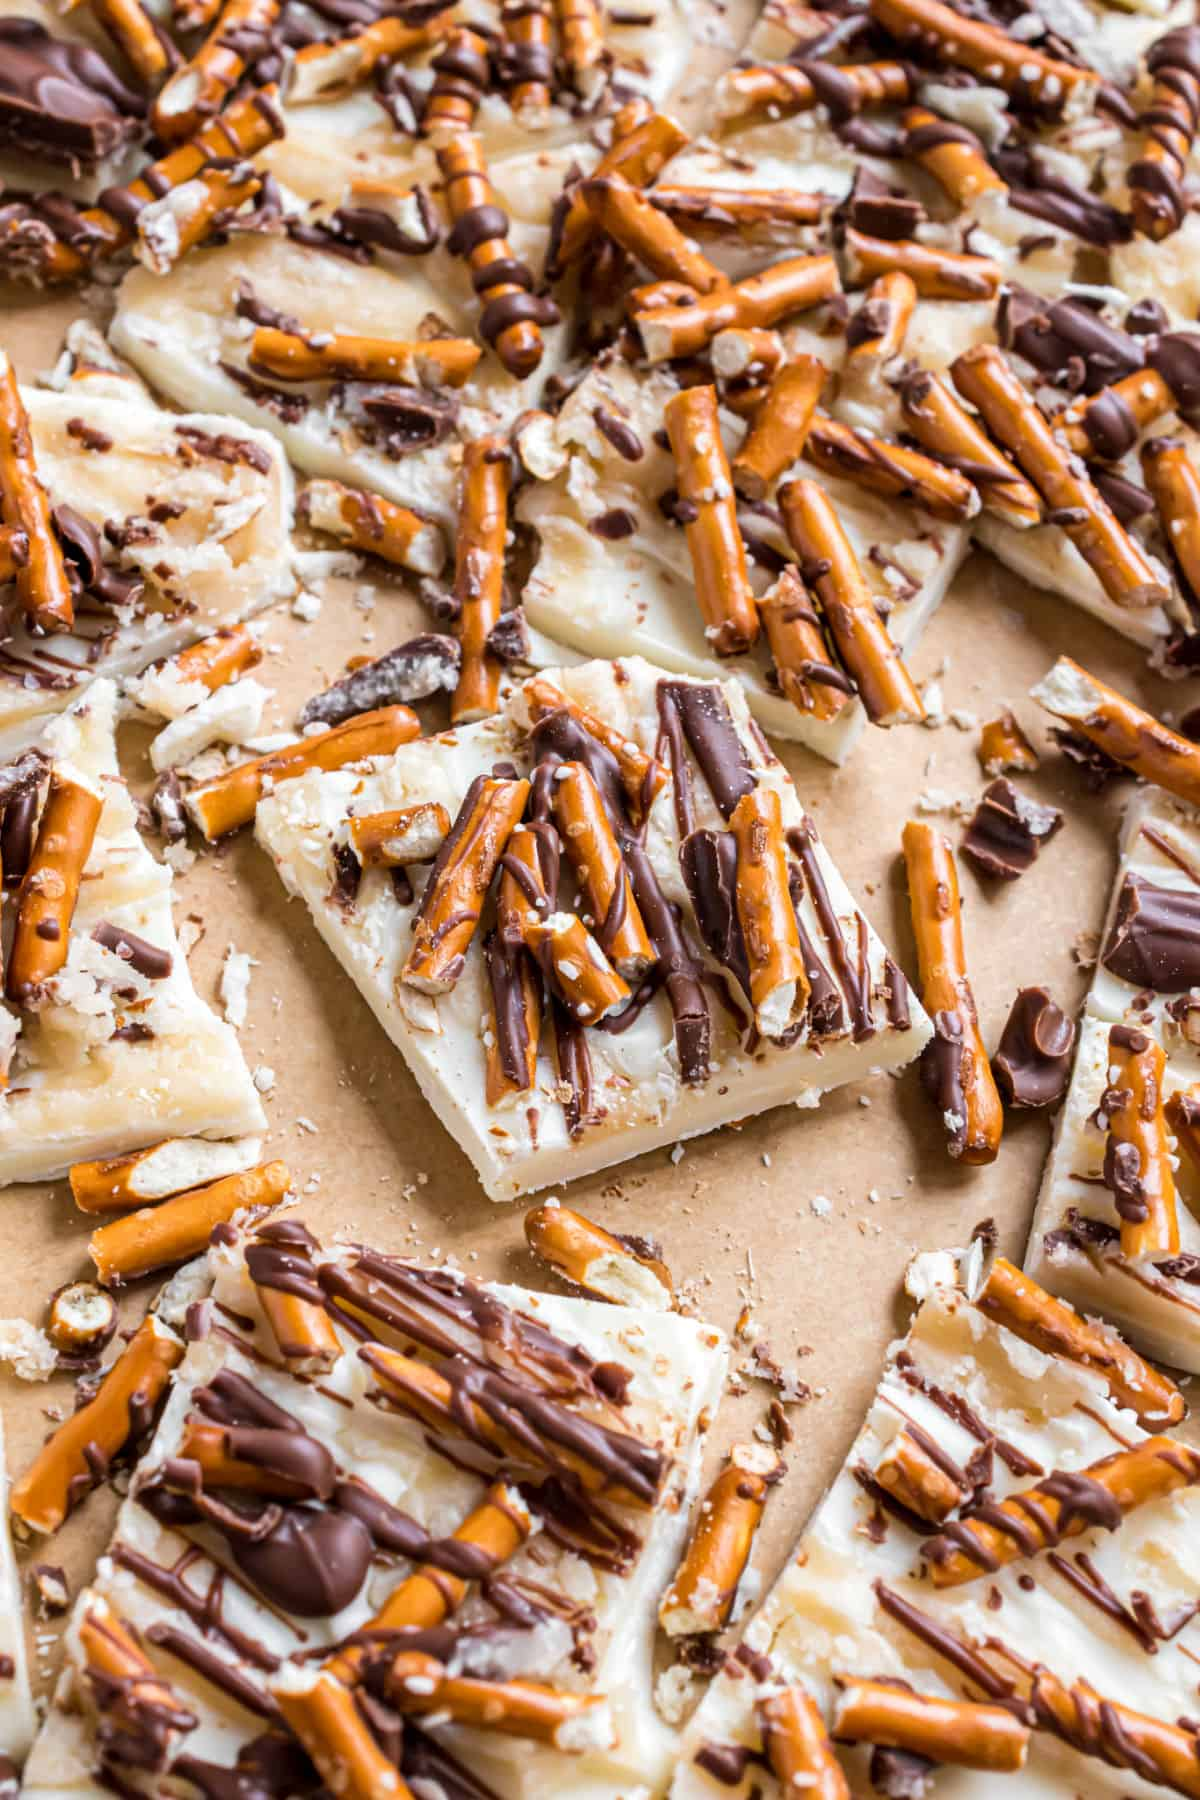 White chocolate topped with salted caramel, pretzels, and milk chocolate, cut into pieces.